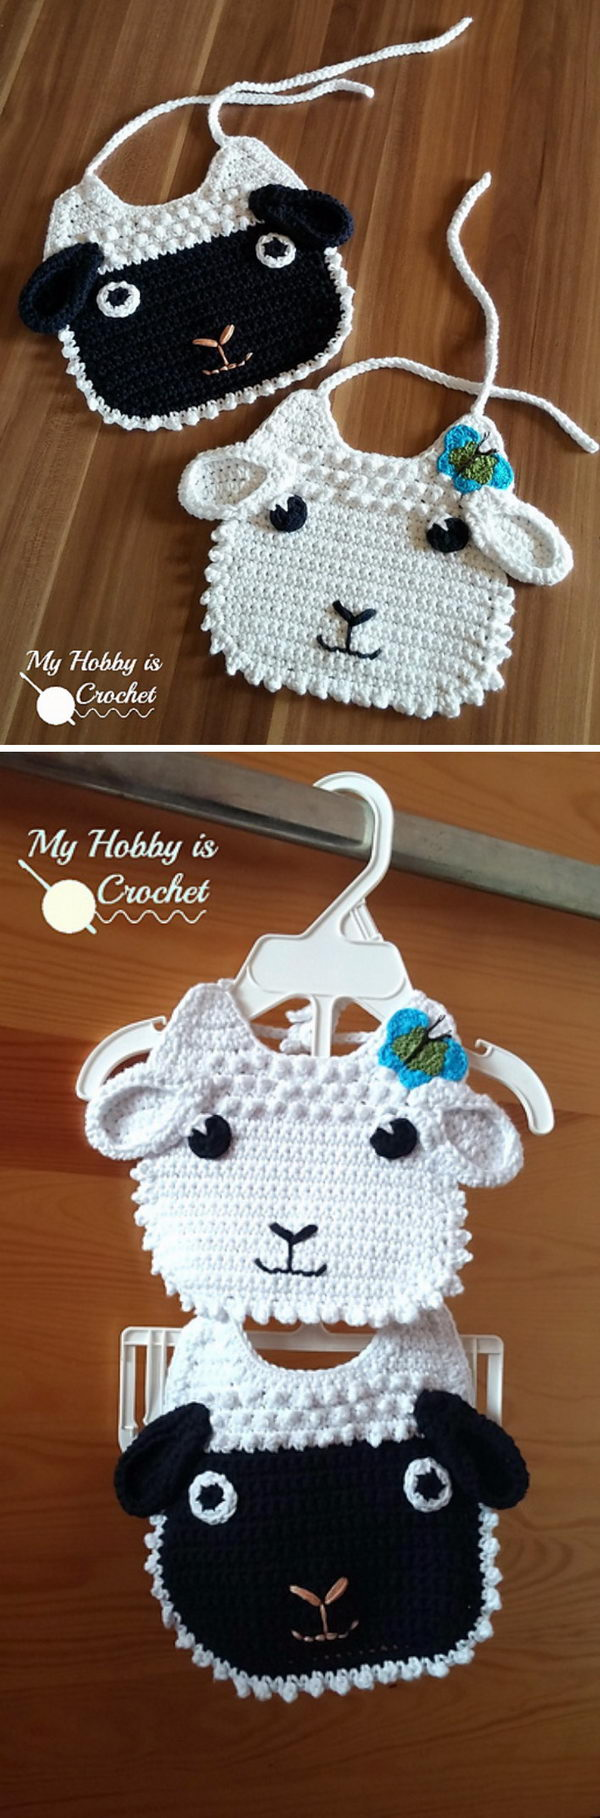 25 Crochet Baby Shower Gift Ideas Styletic